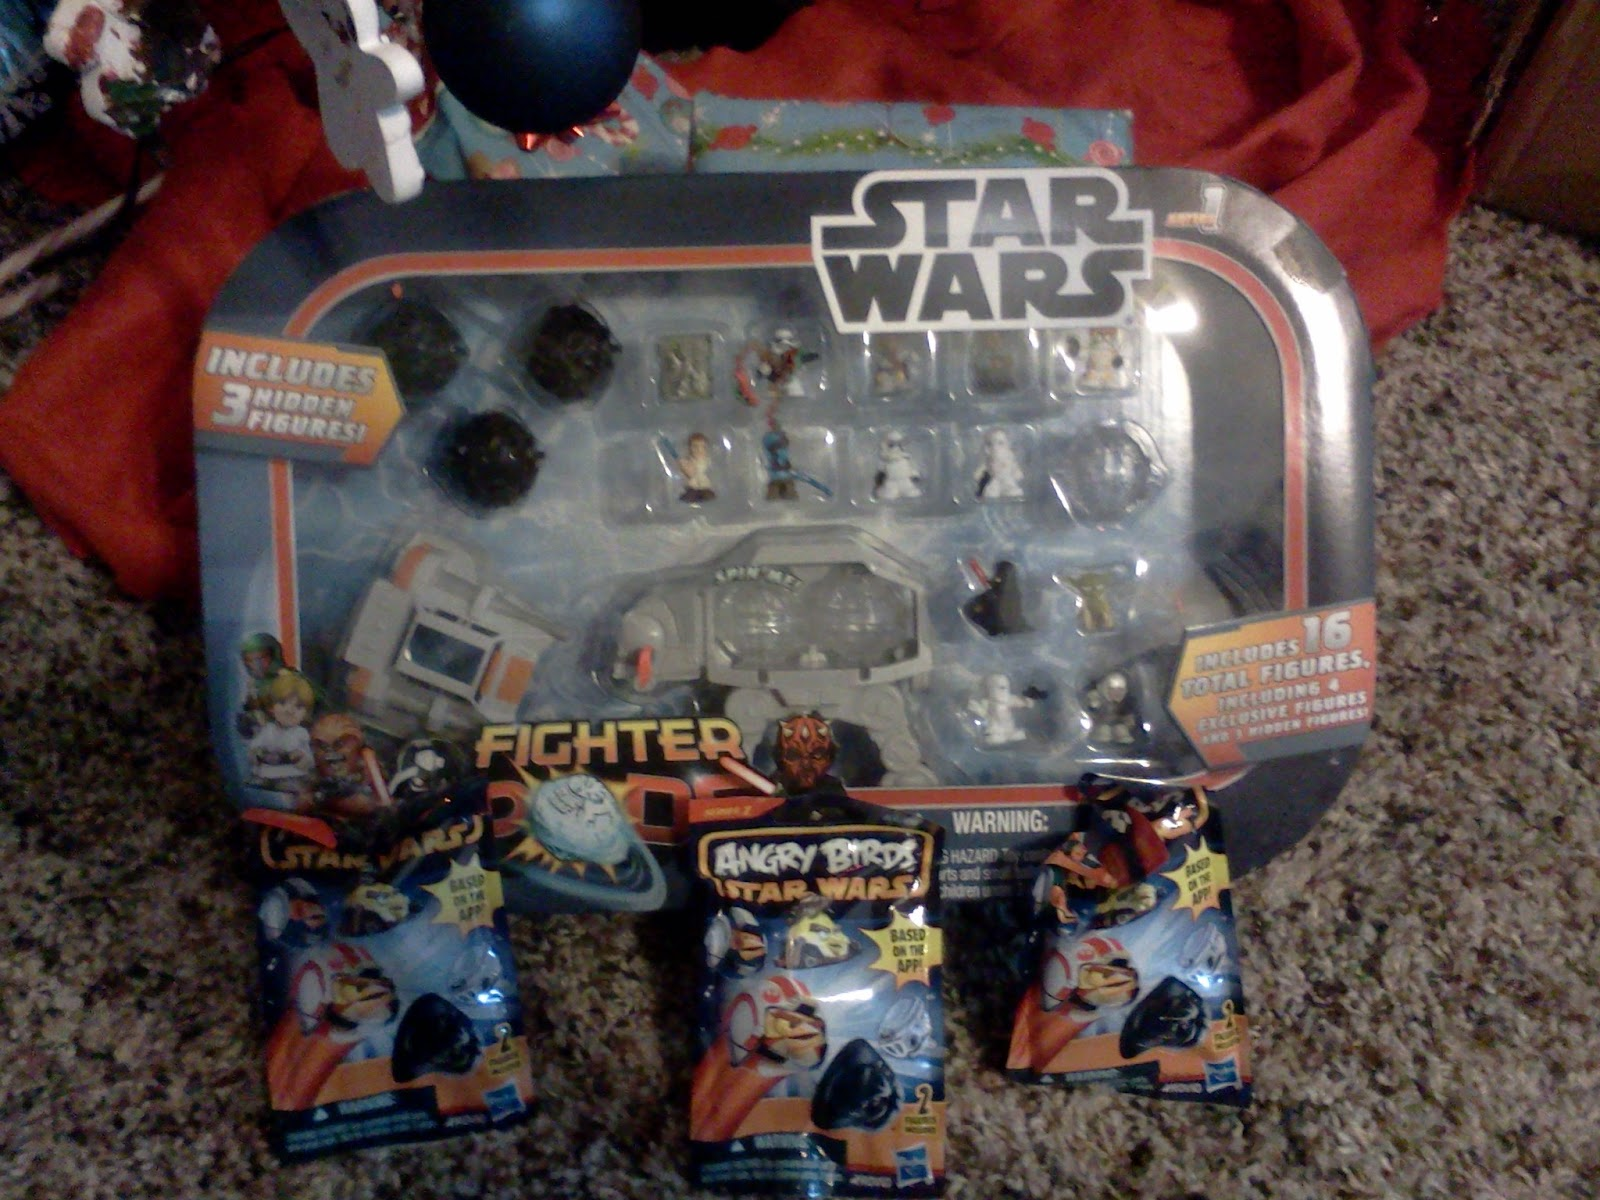 Star Wars Toys Angry Birds Holiday Guide 2012 Mommy Squishy Circuits Teach Electrical Innovation Opus Magnum Micro Heroes Mega Battles Iconic Characters Get A Collectible New Gaming Twist With This Awesome Fighter Pods Pack Use Your To Knock Down